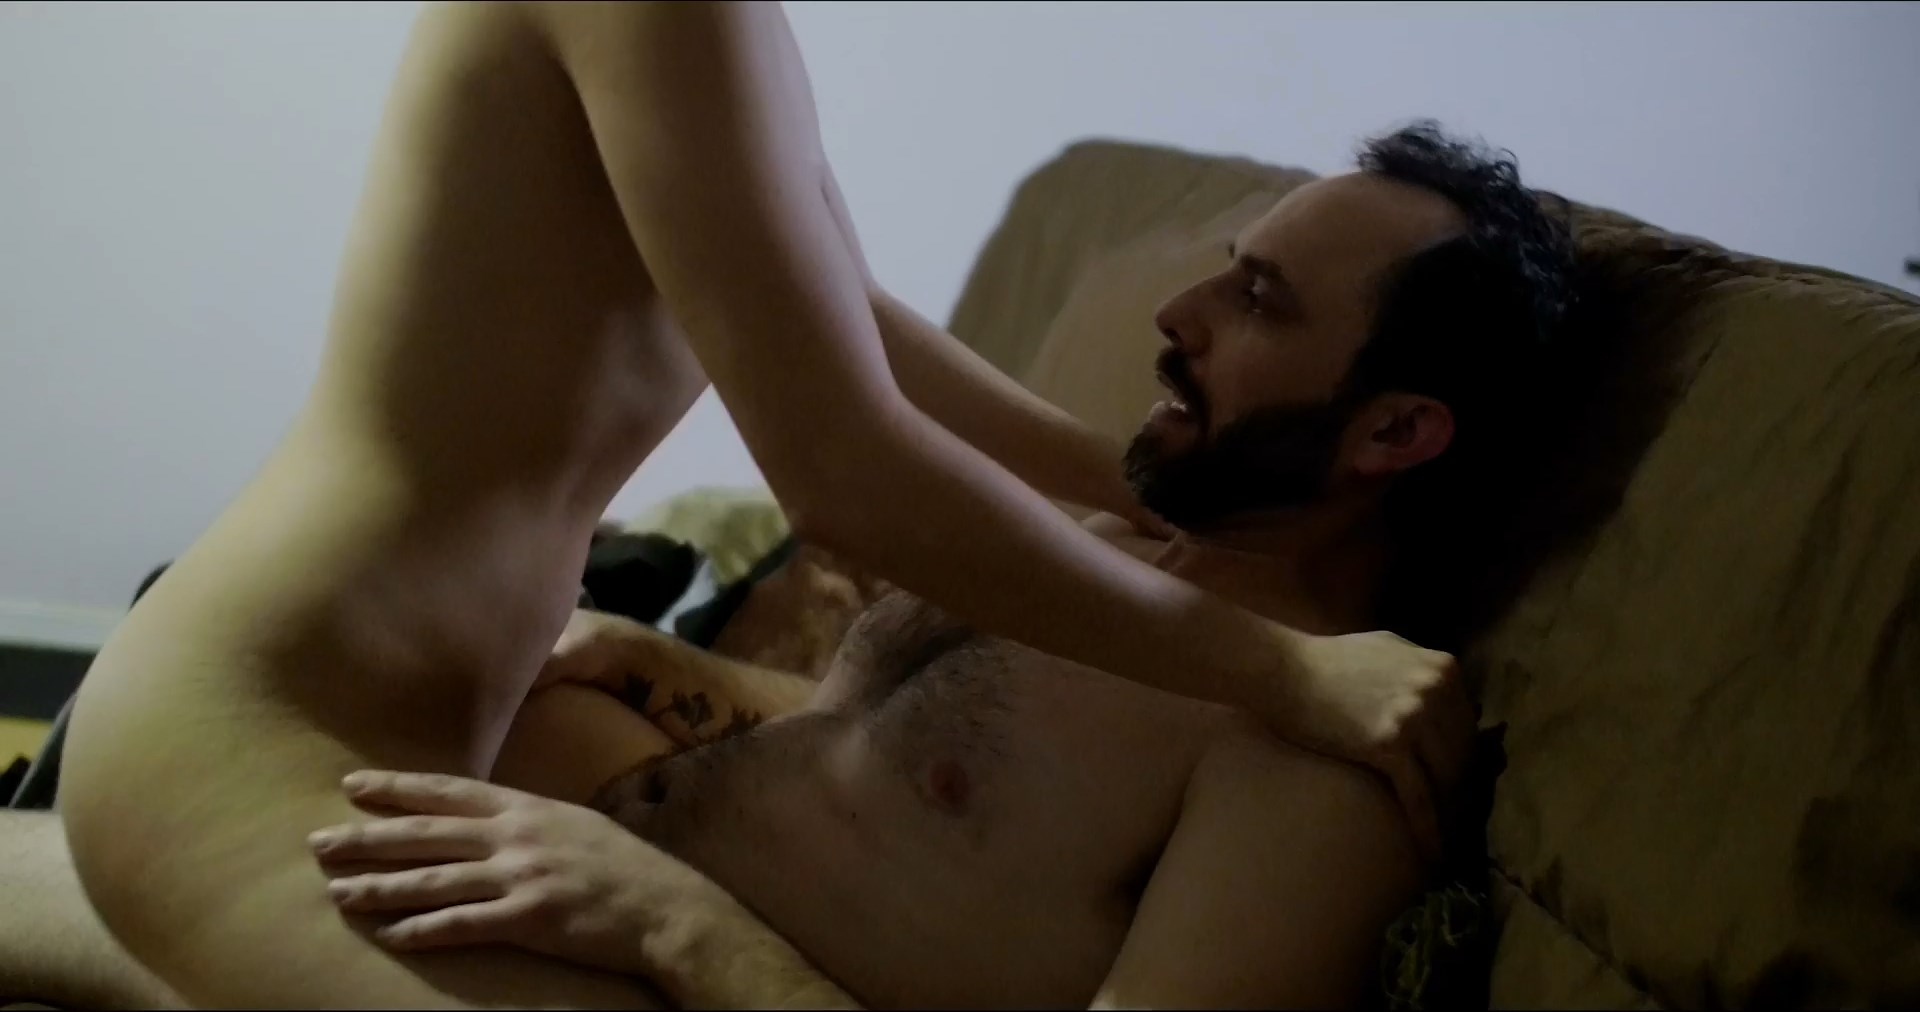 Jennifer Robyn Jacobs nude - Unwholly Moments (2018)